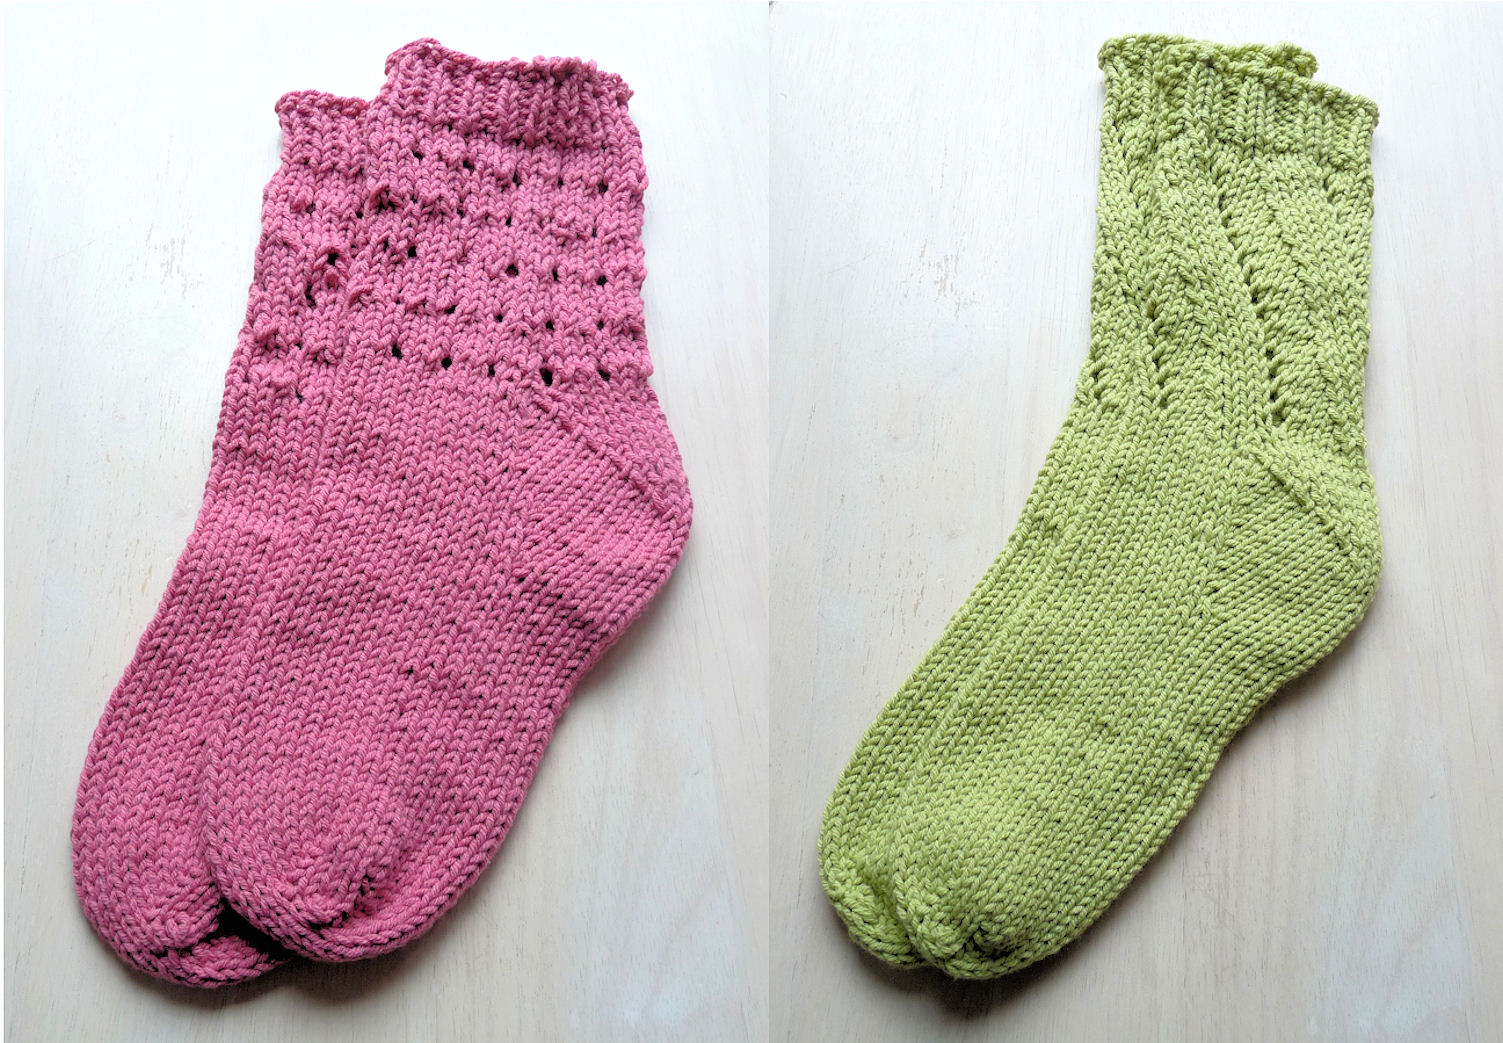 Knitting Pattern For Cotton Socks : Carmens Yarn Projects: Crocheted Socks and Knit Freedom